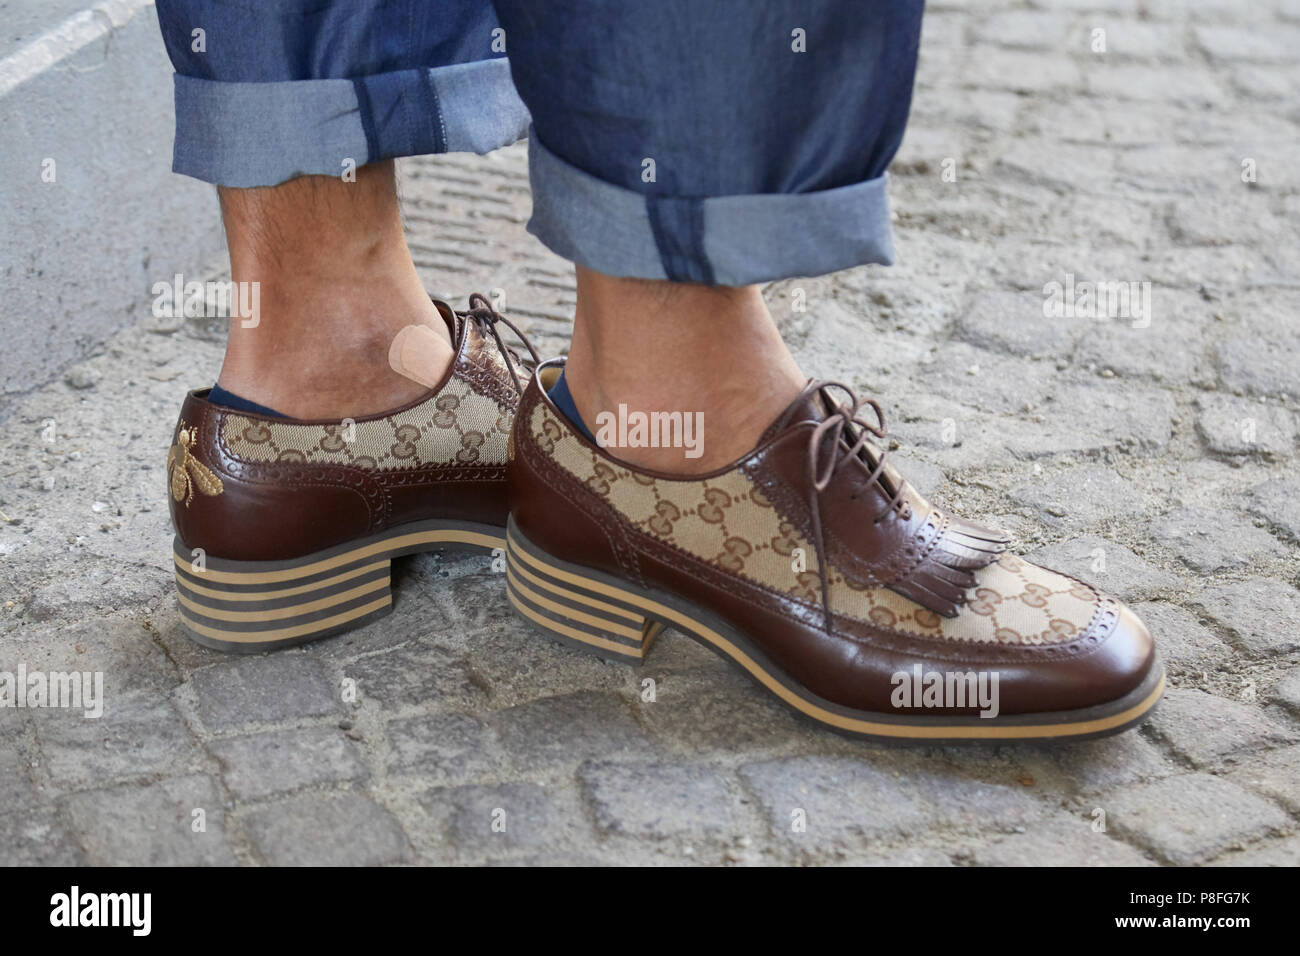 a275b0403043 MILAN - JUNE 16  Man with brown leather Gucci shoes and blue jeans before  Marni